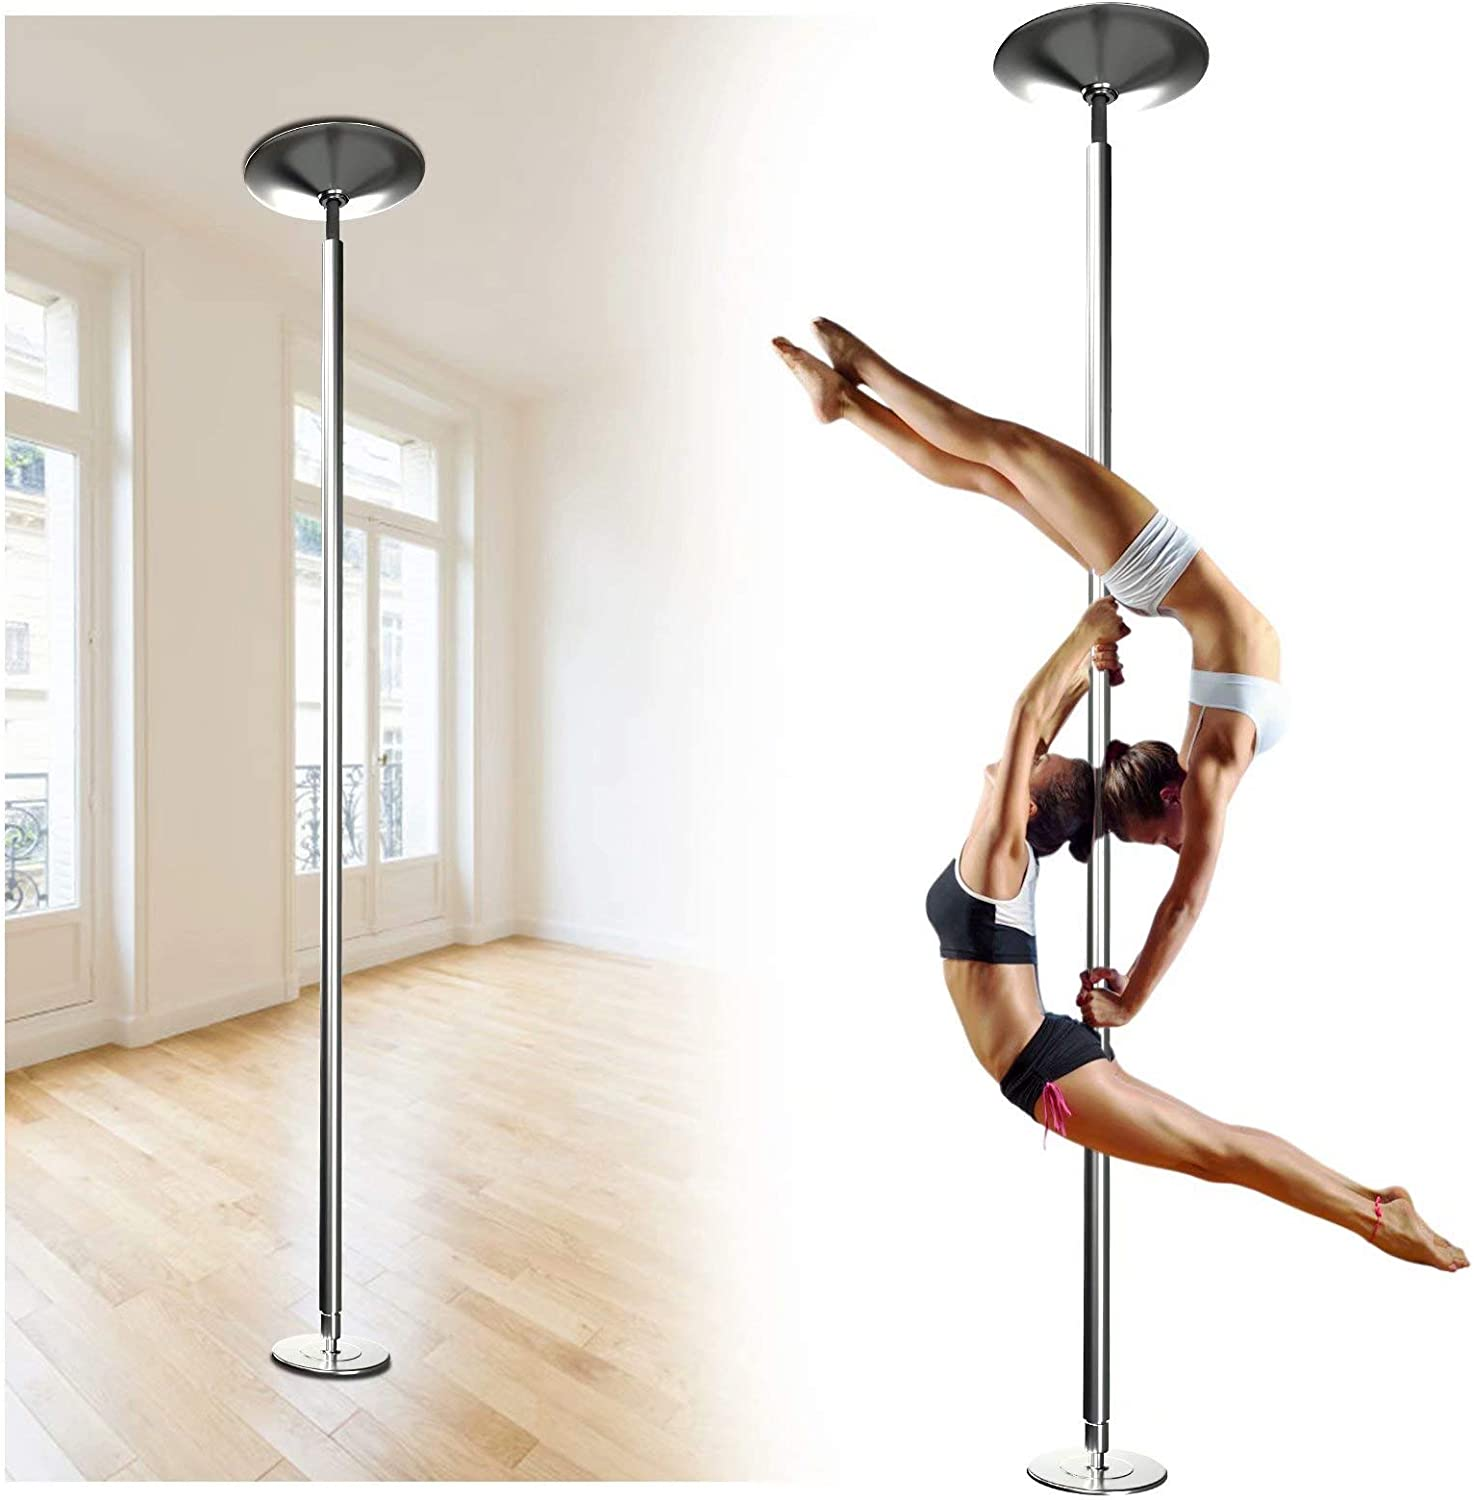 AolliePawer 45mm Upgraded Portable Dance Pole for Beginner and Professional Tripper,Large Adjustable Height,Removable Spinning and Static Dancing Pole for Home,Fitness Club,Bar Party